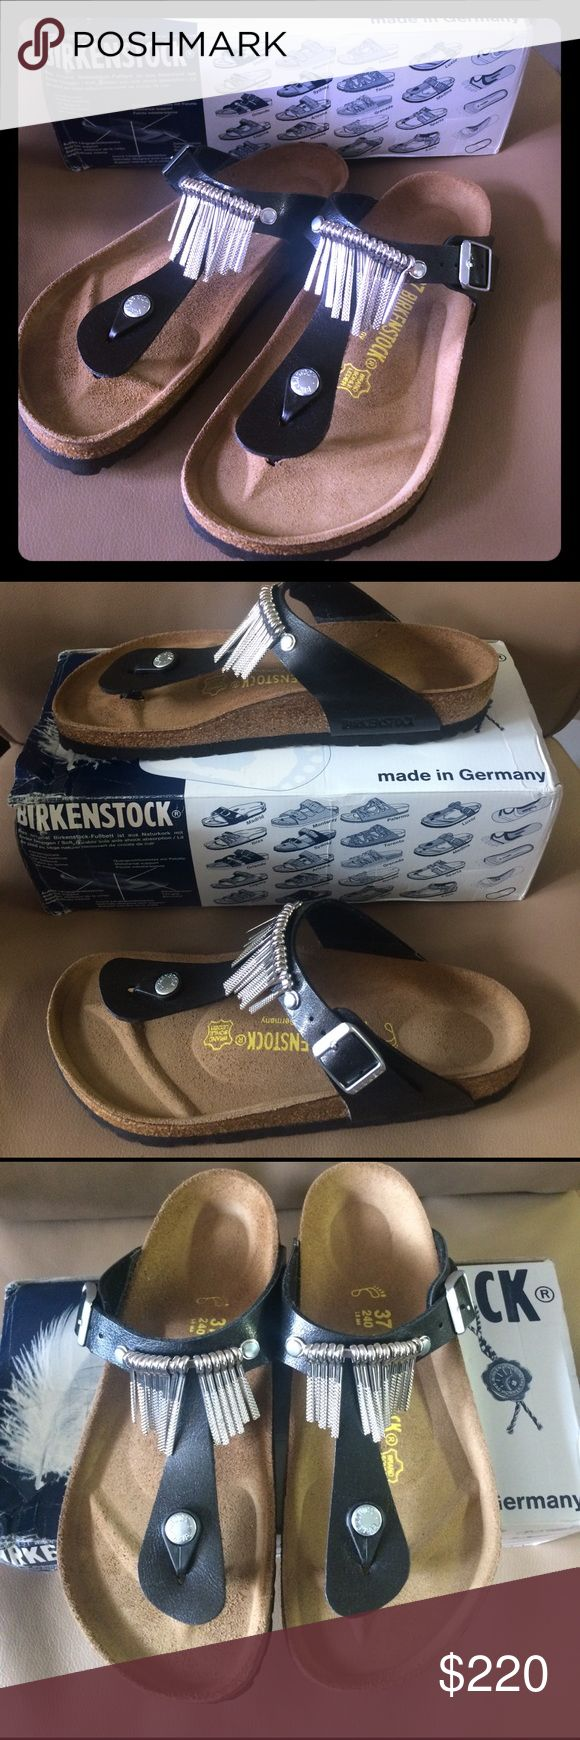 Birkenstock Gizeh Fringe Sandal New, never worn, super cute, sold out, hard to find, size 37 (I wear anywhere from size 7 to 8 and they fit me). Priced high but I paid a lot more than retail for them and I just want to make my money back. Birkenstock Shoes